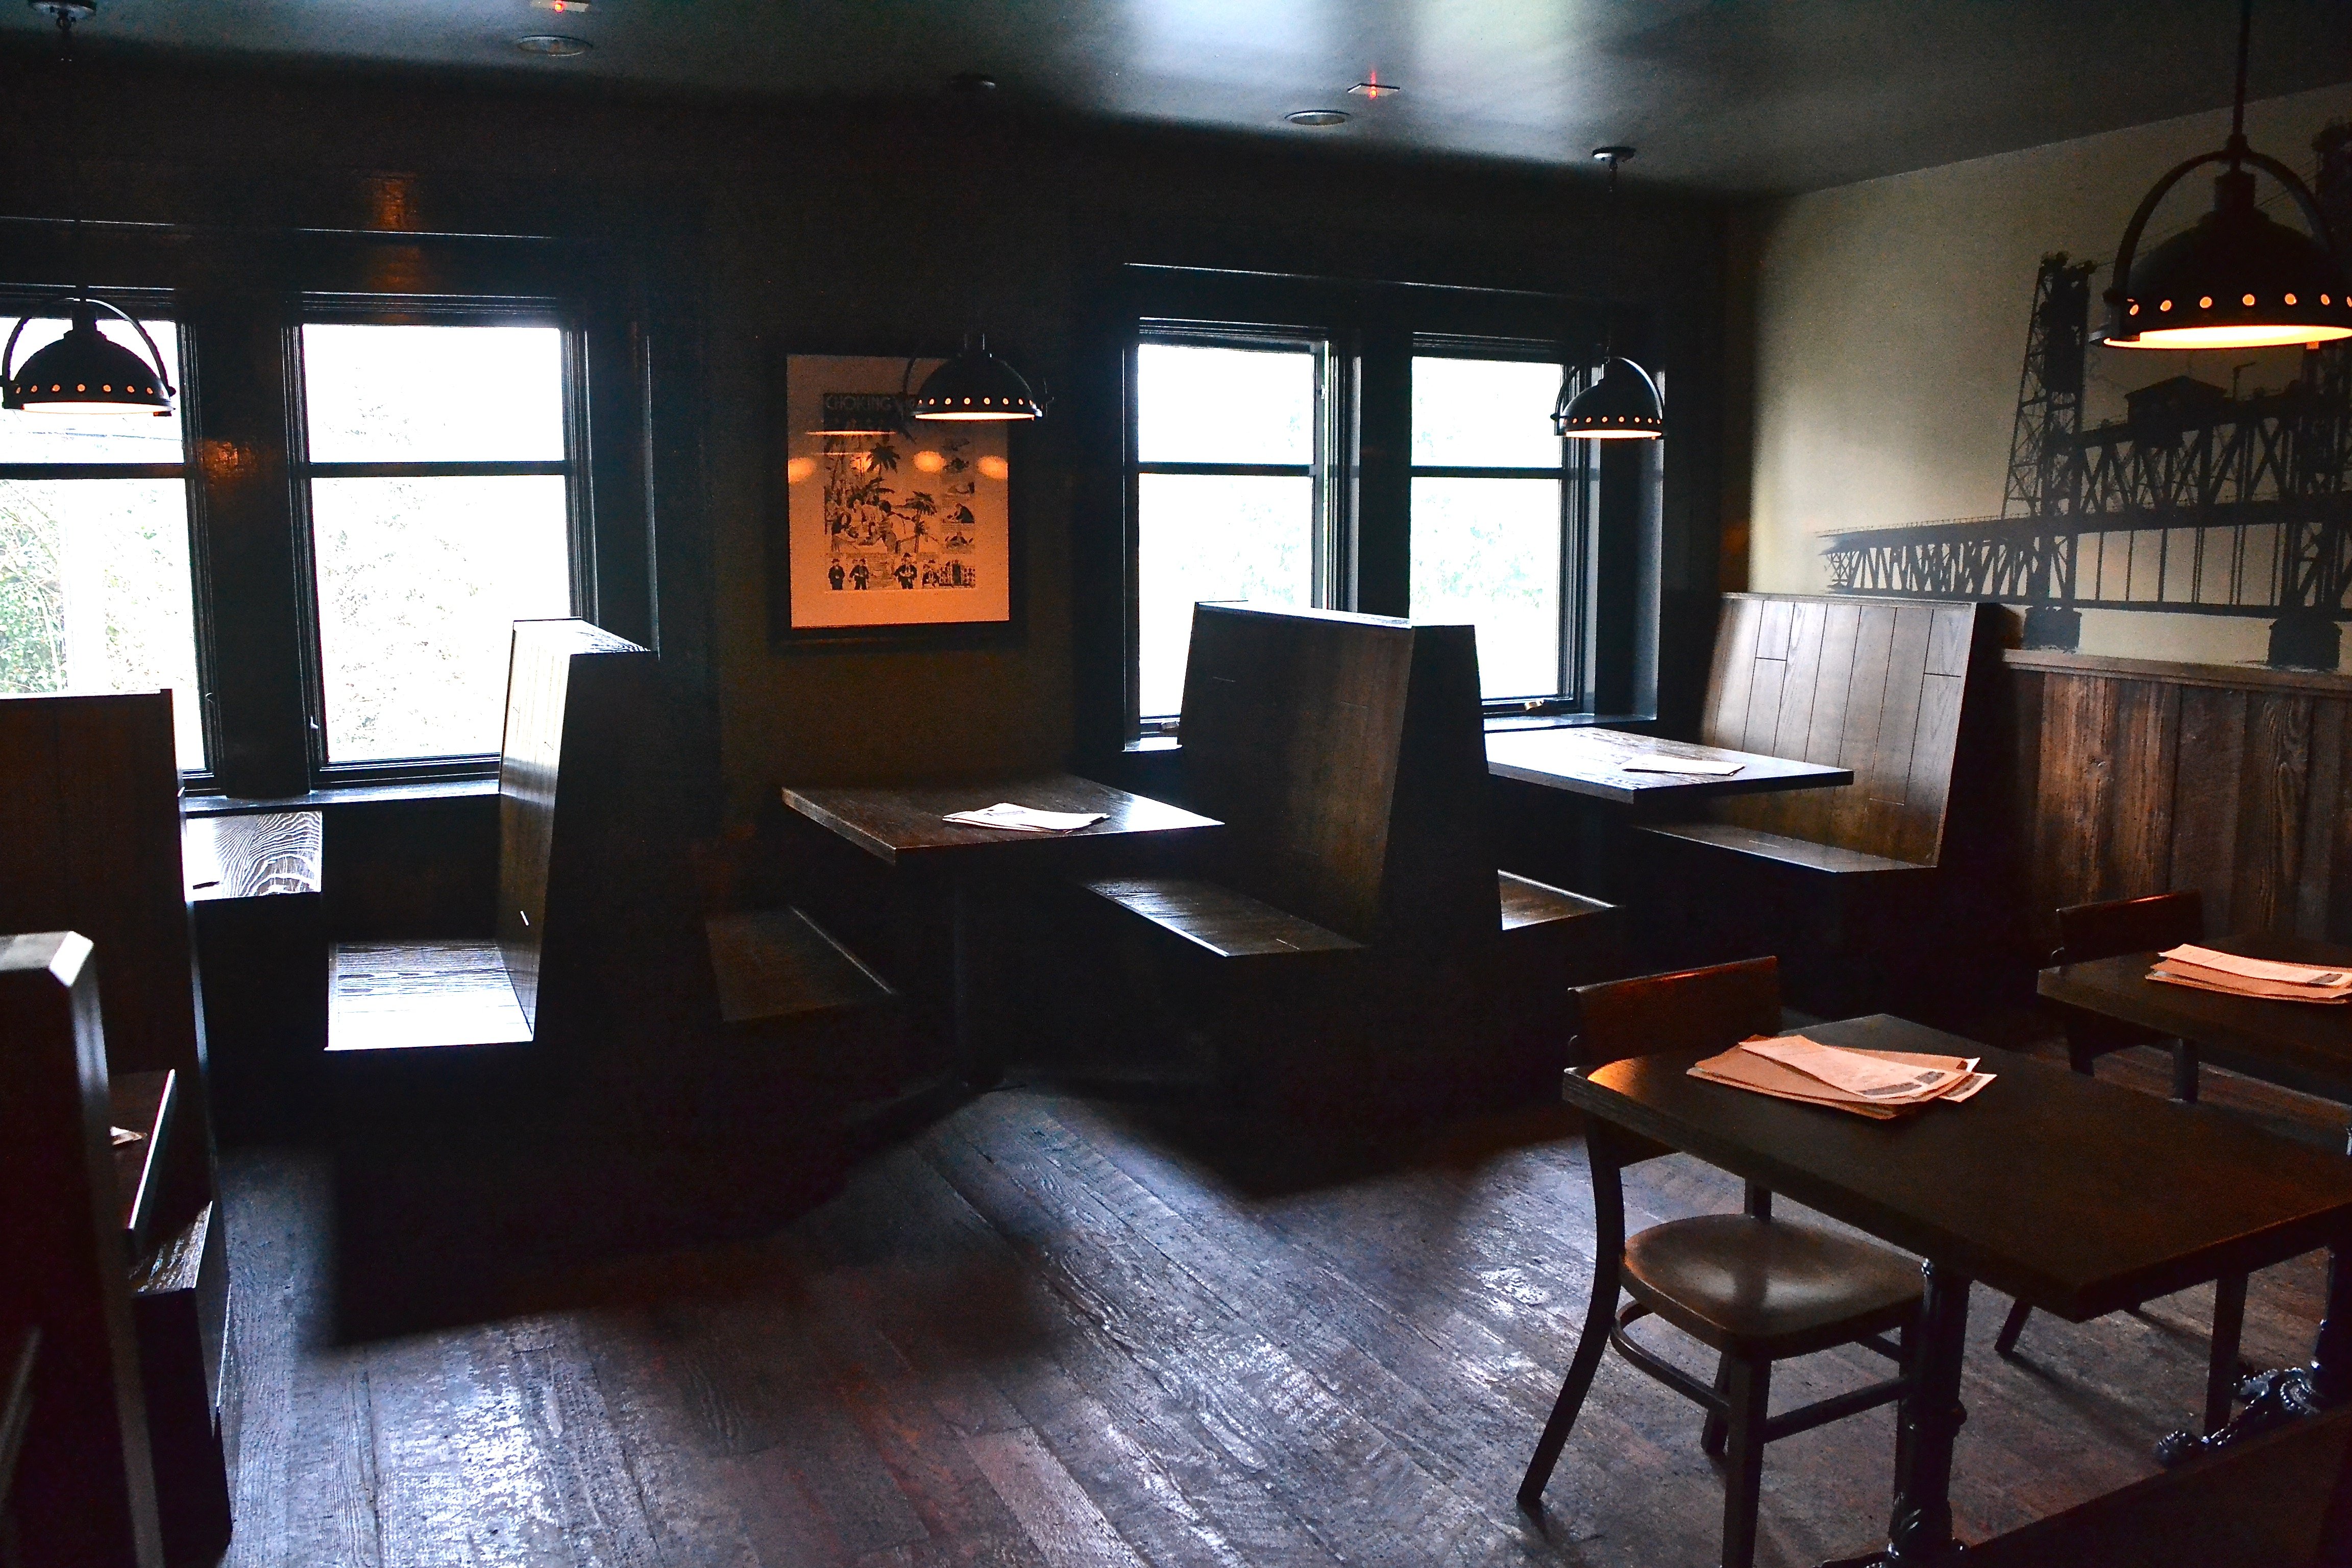 Interurban's recently remodeled upstairs